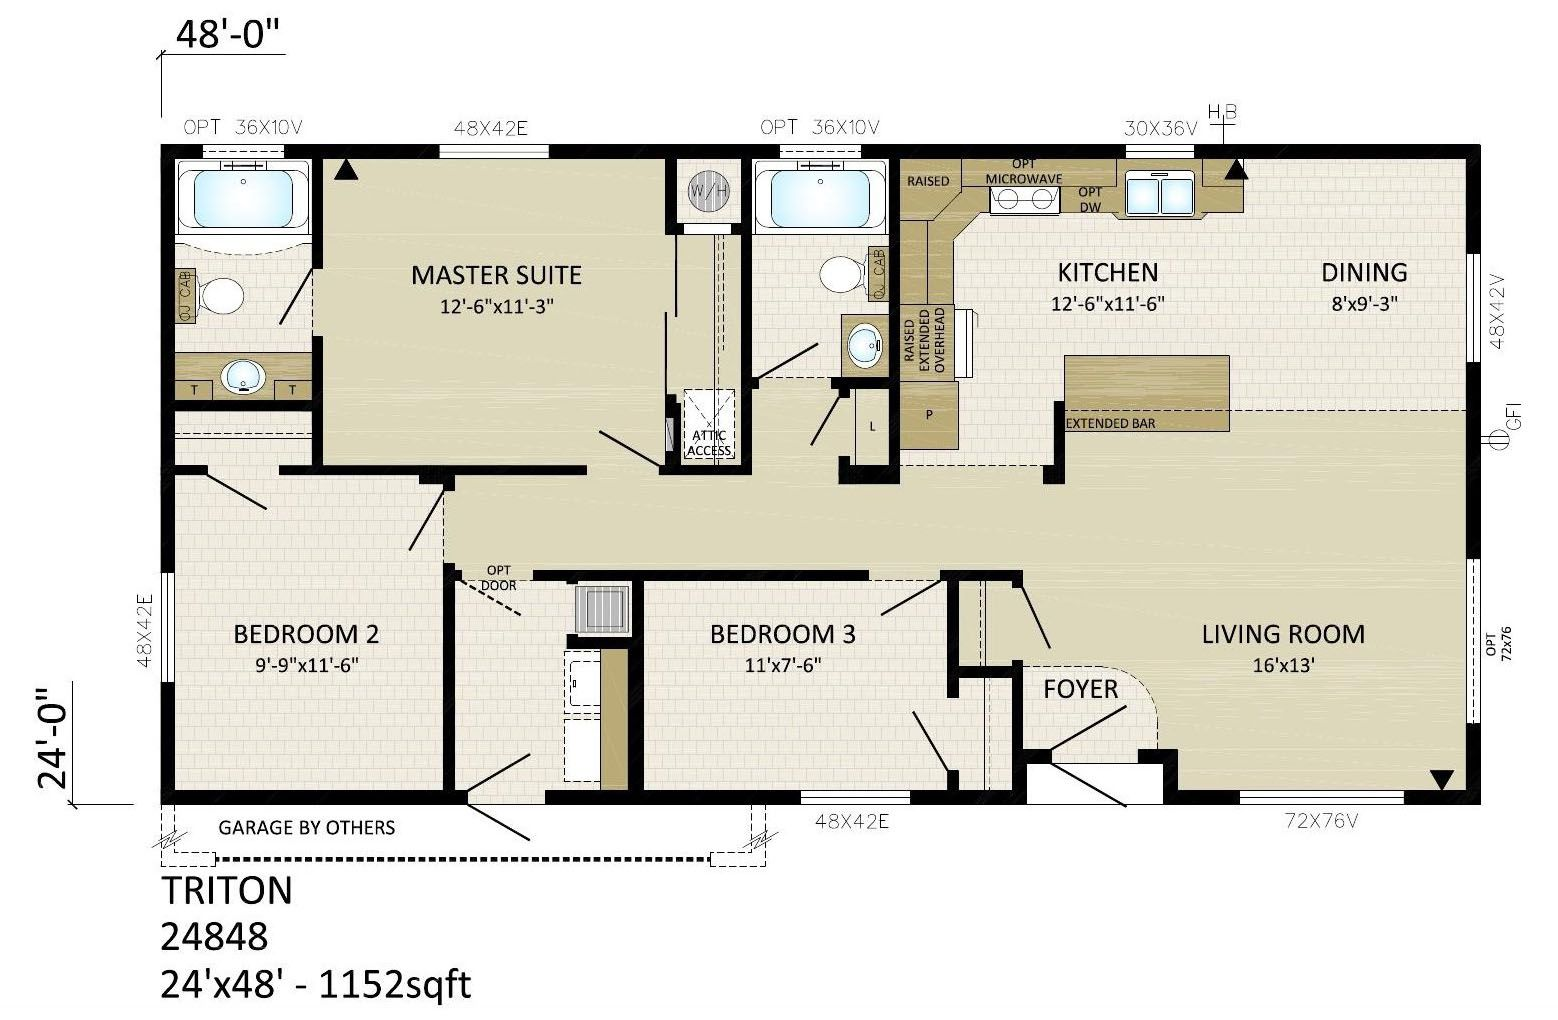 24 x 48 homes floor plans - Google Search | Floor plans ... Raised Ranch House Plans X on